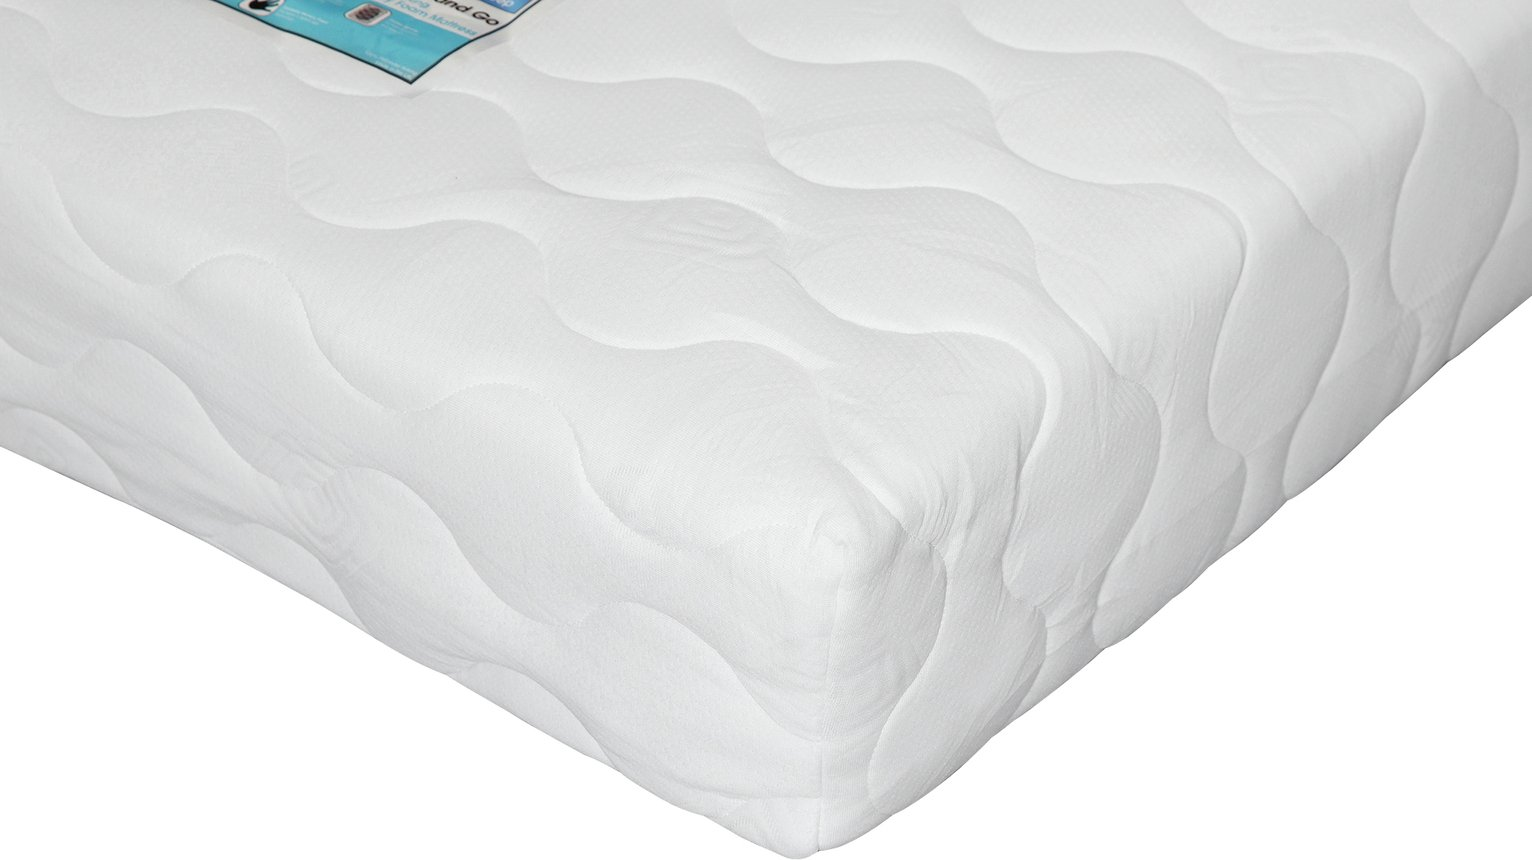 Argos Home Collect & Go Pocket Memory Foam Single Mattress